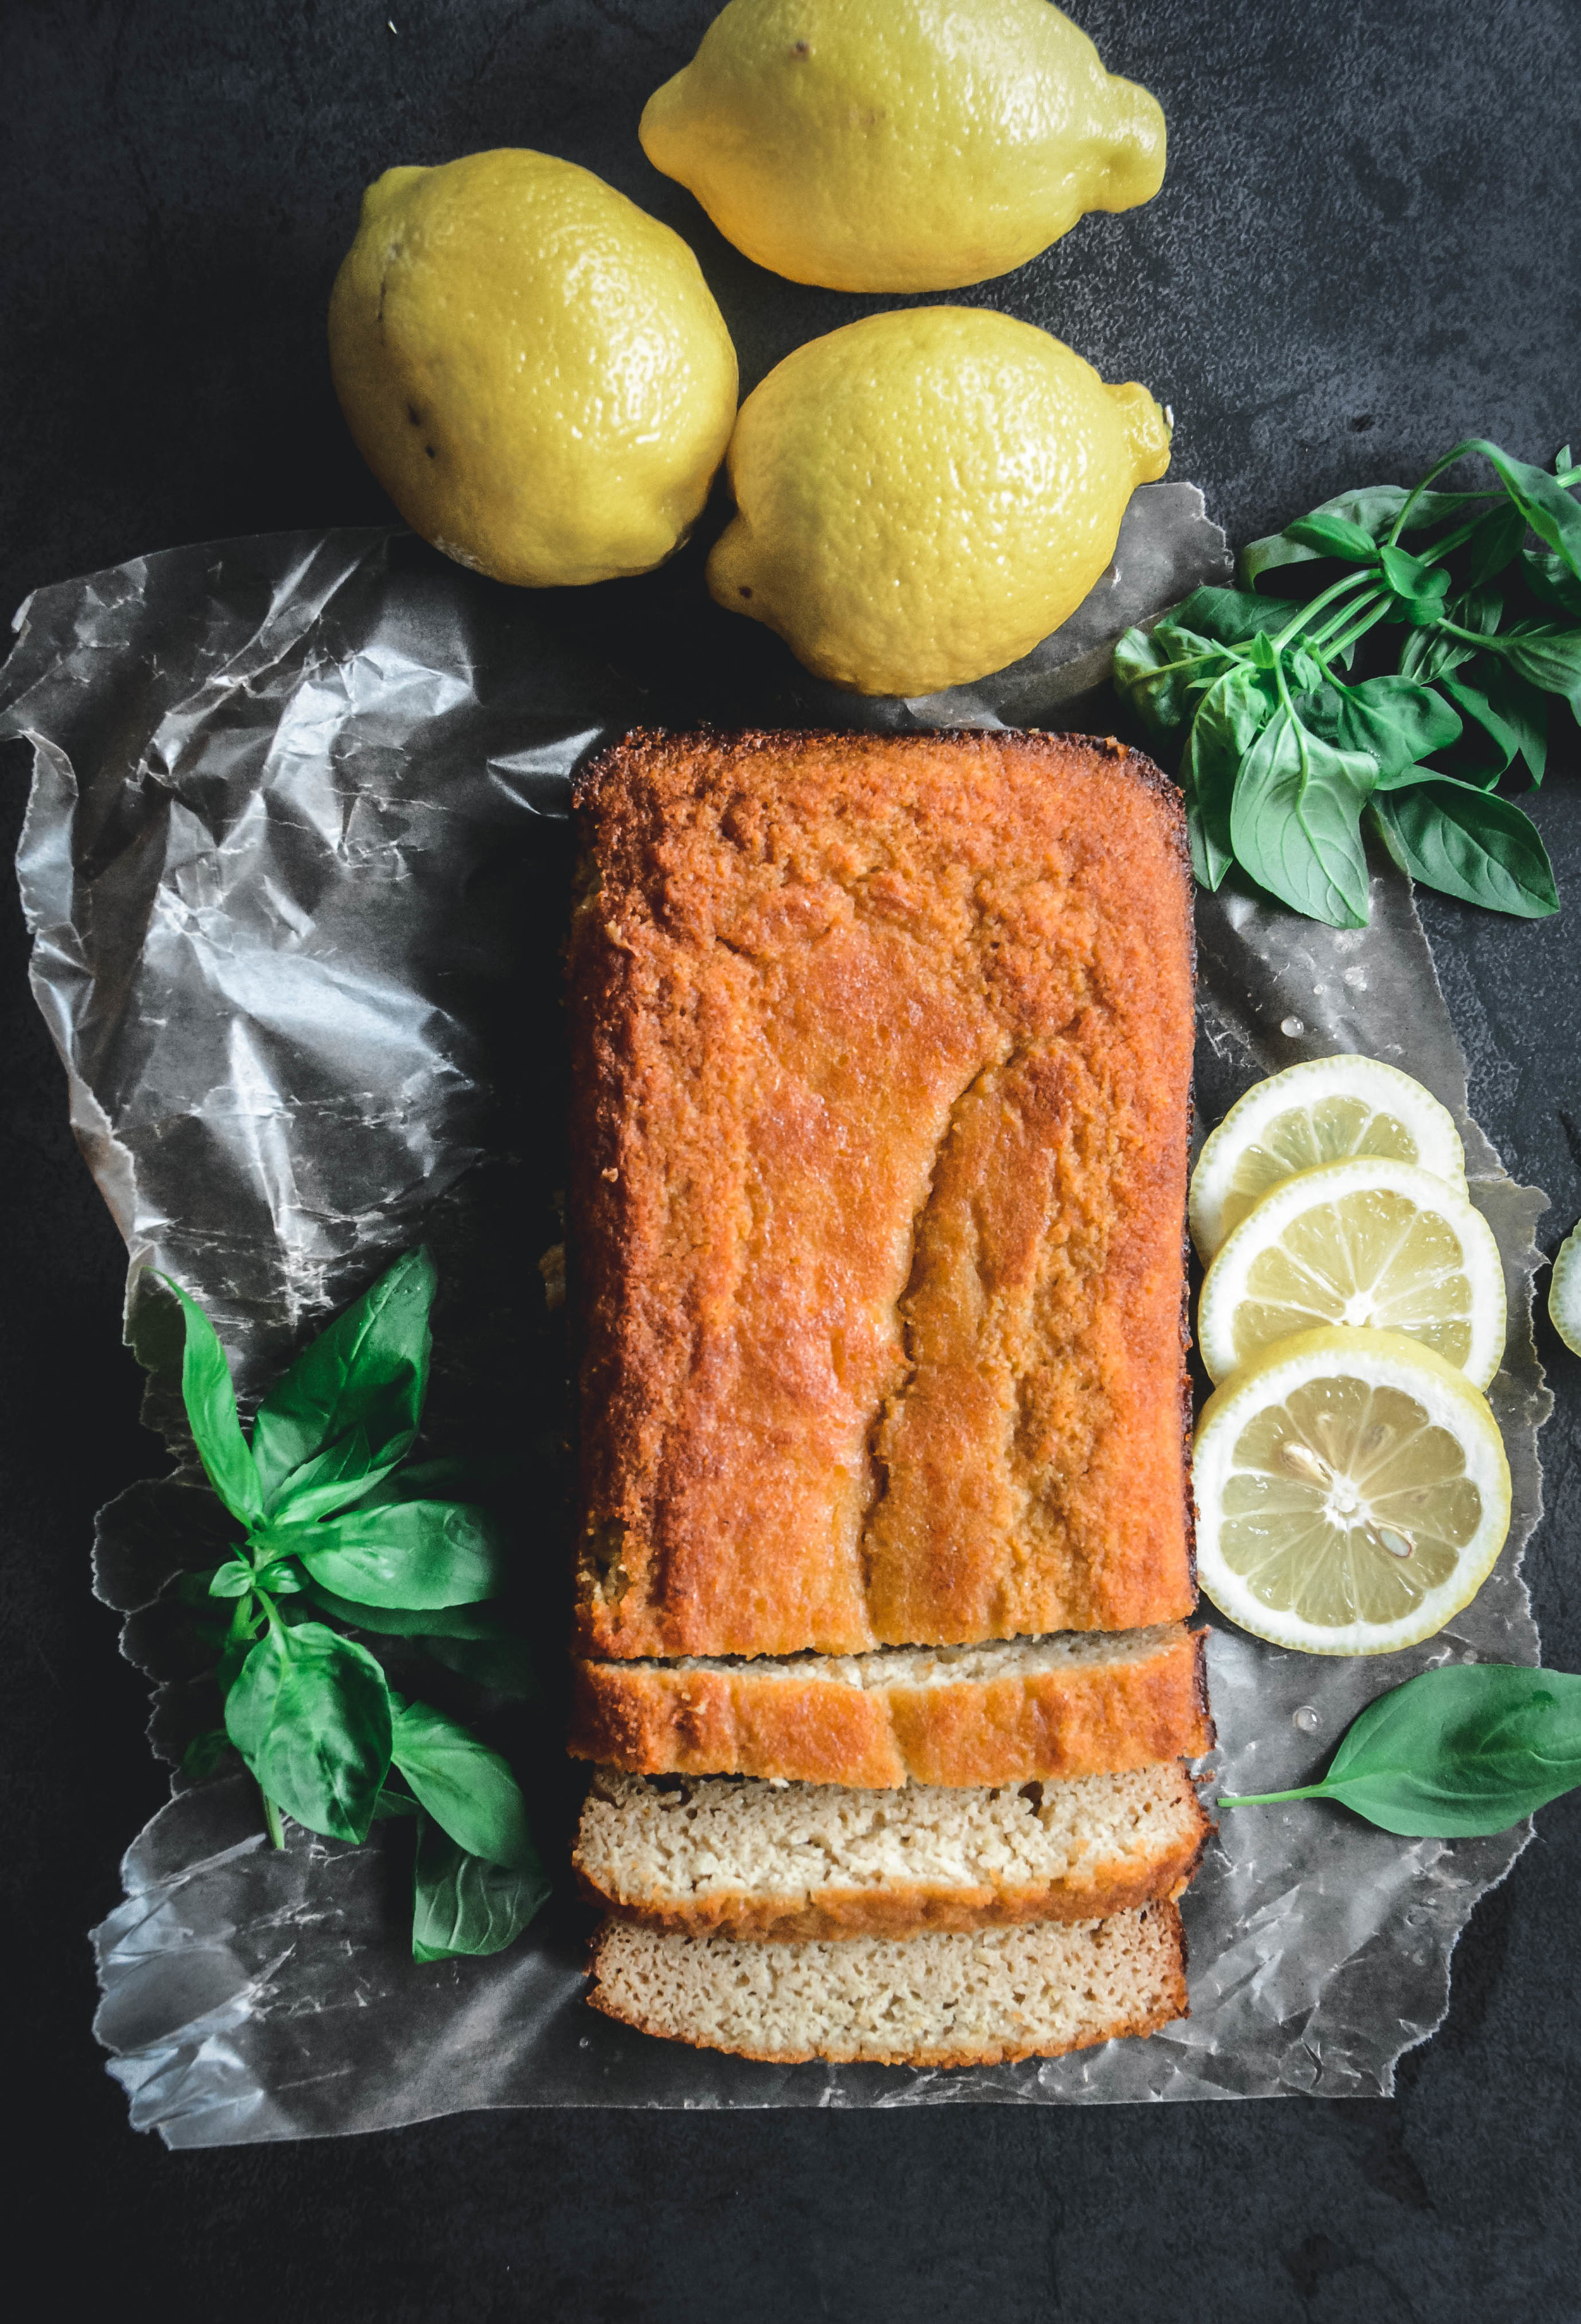 Loaf cake and lemons on table with greens